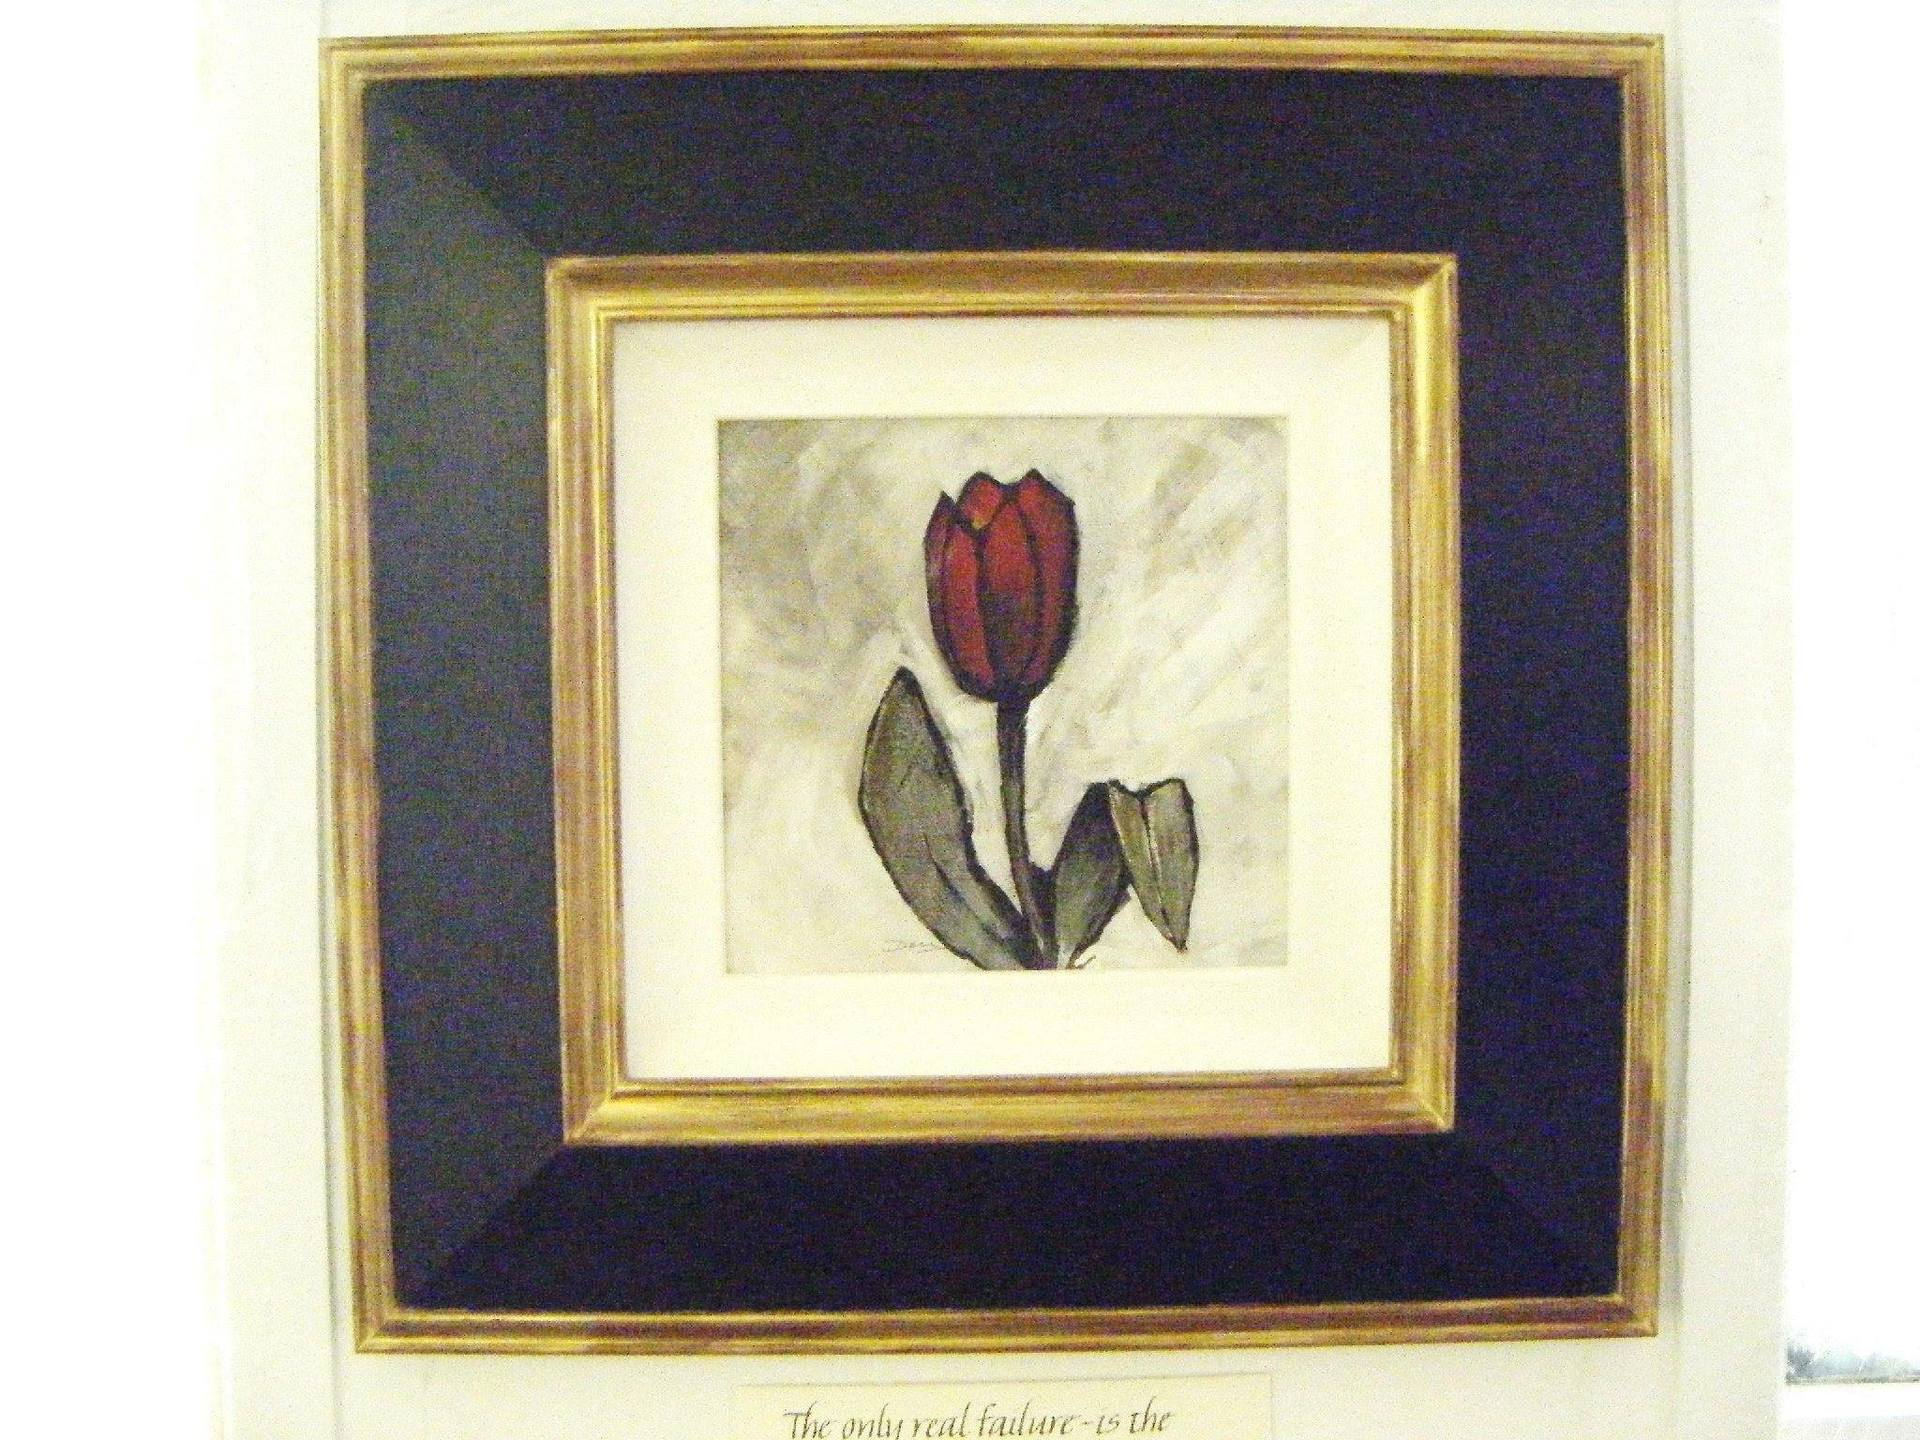 Painting of a rose